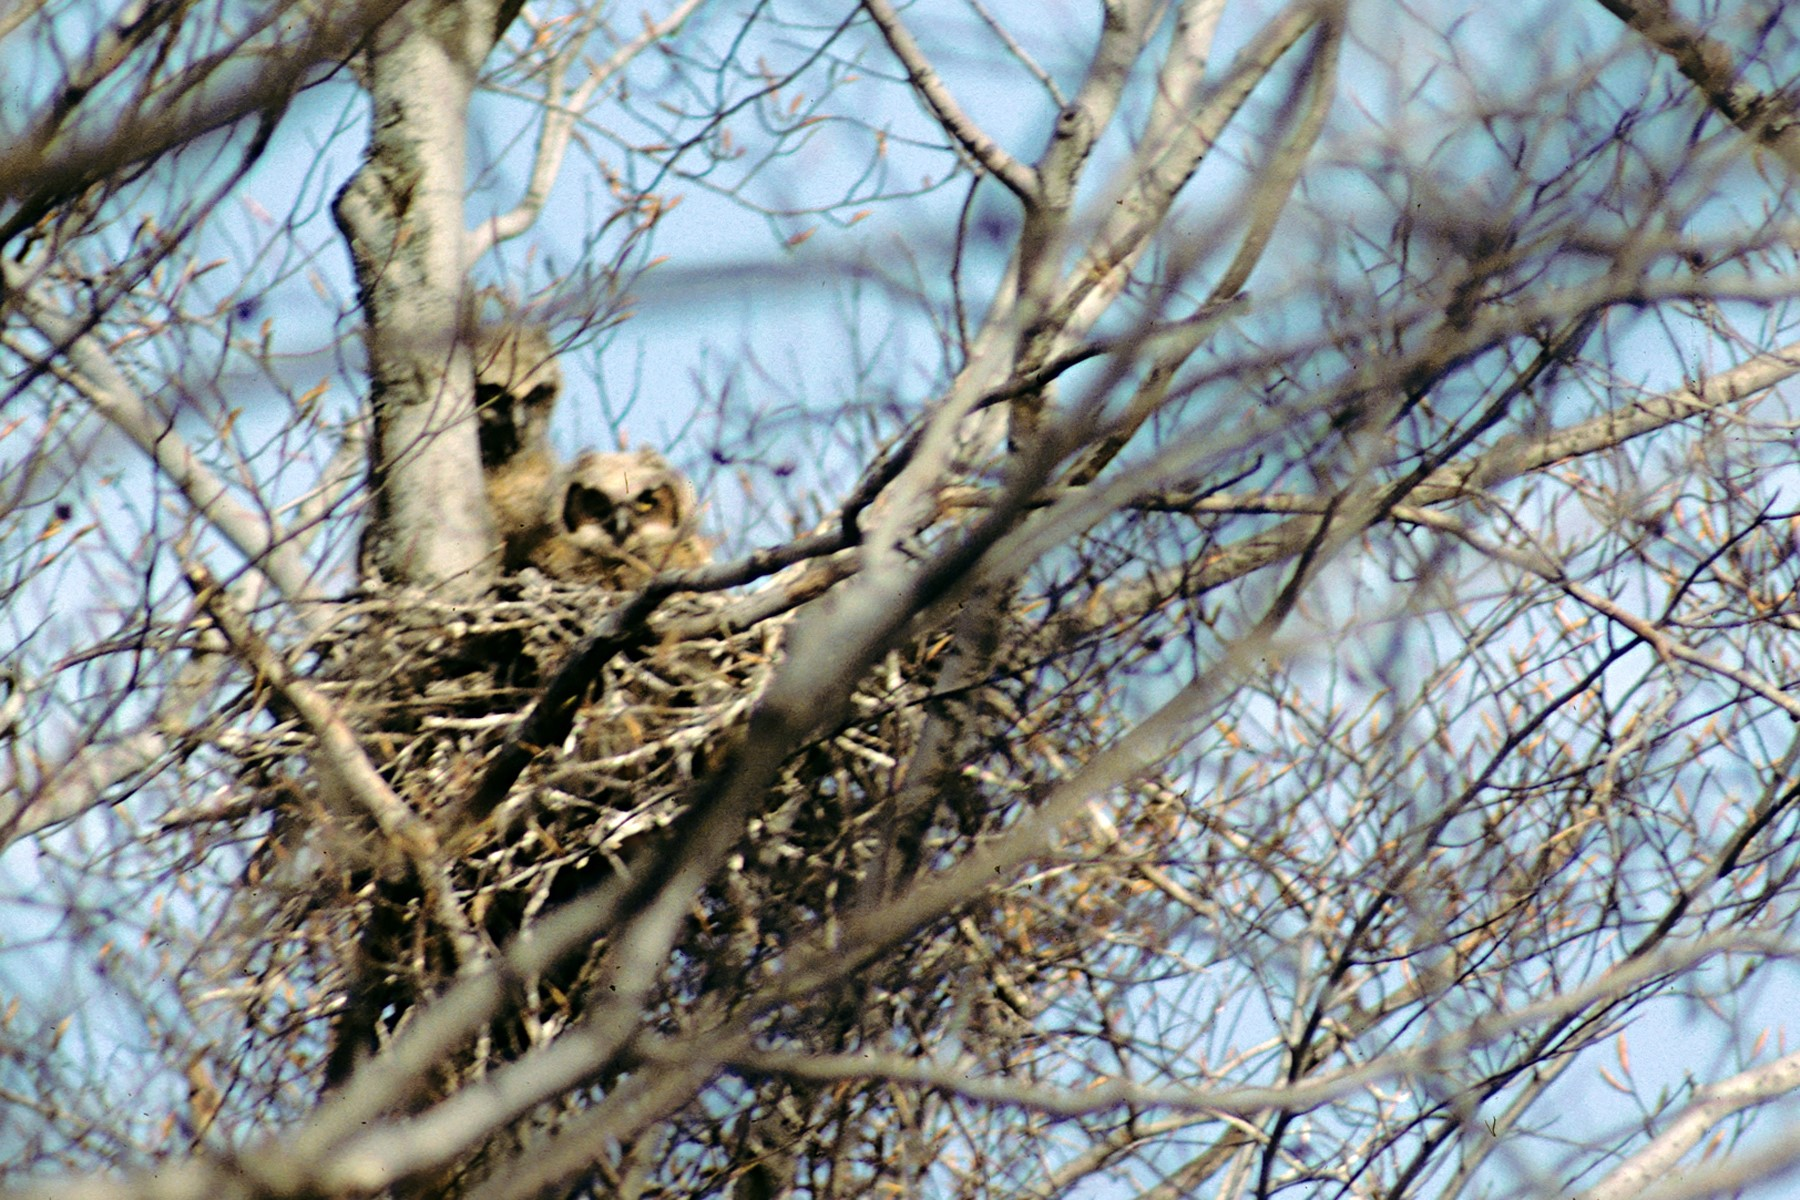 Love is in the air for great horned owls